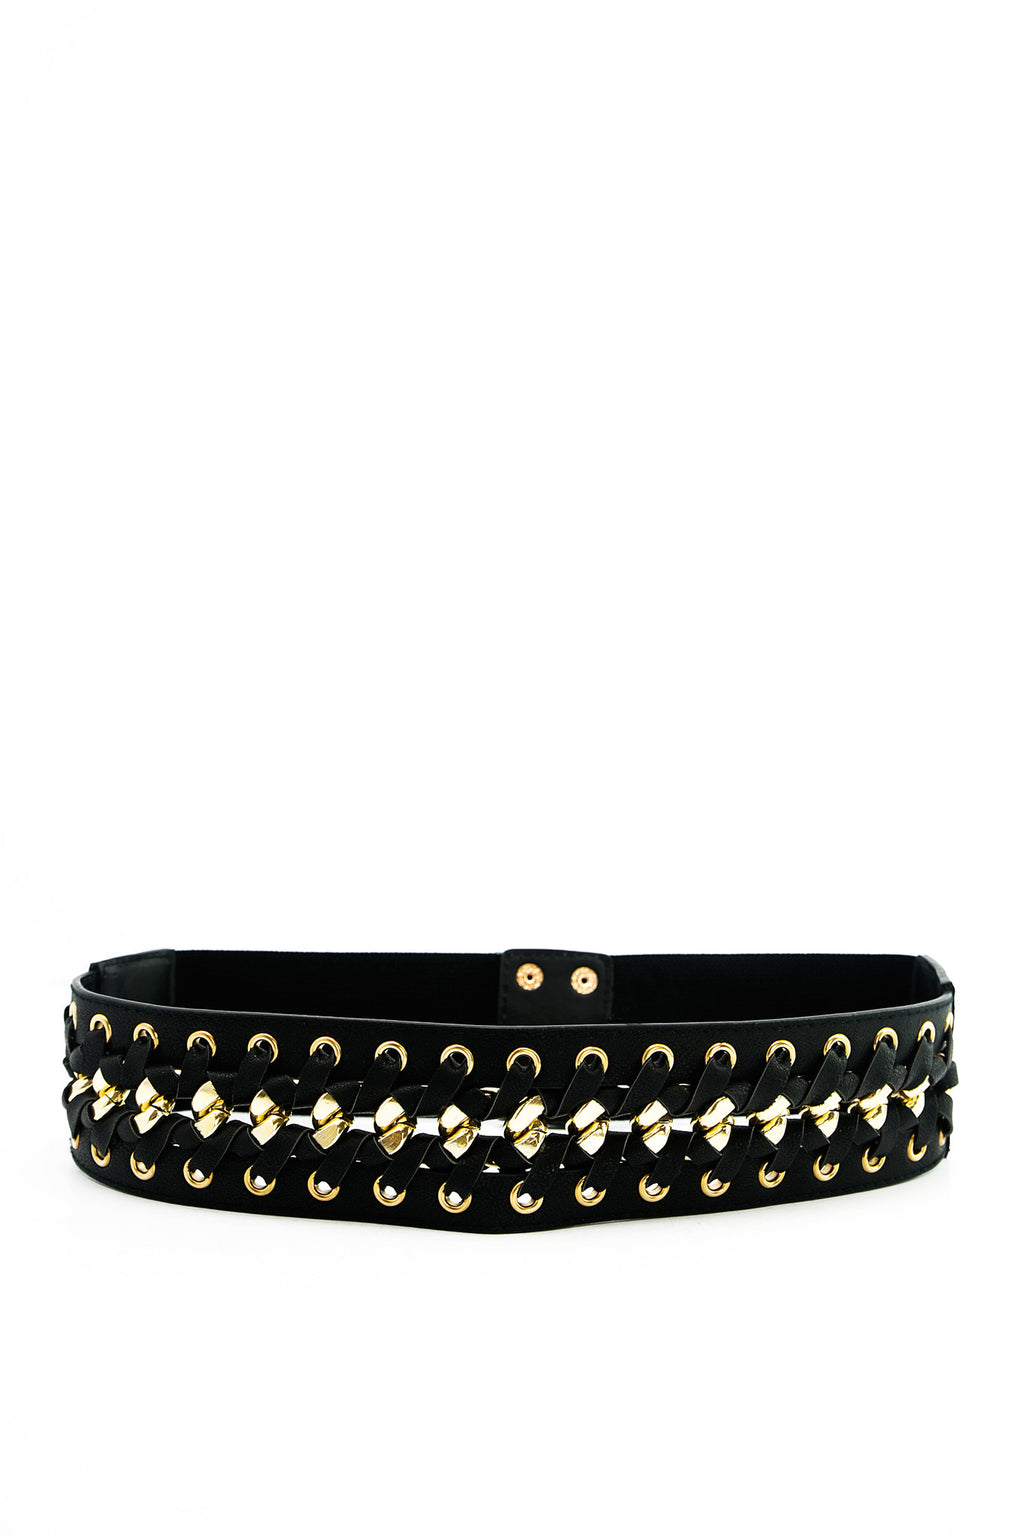 Stitched Gold Lace-Up Leather Belt - Haute & Rebellious